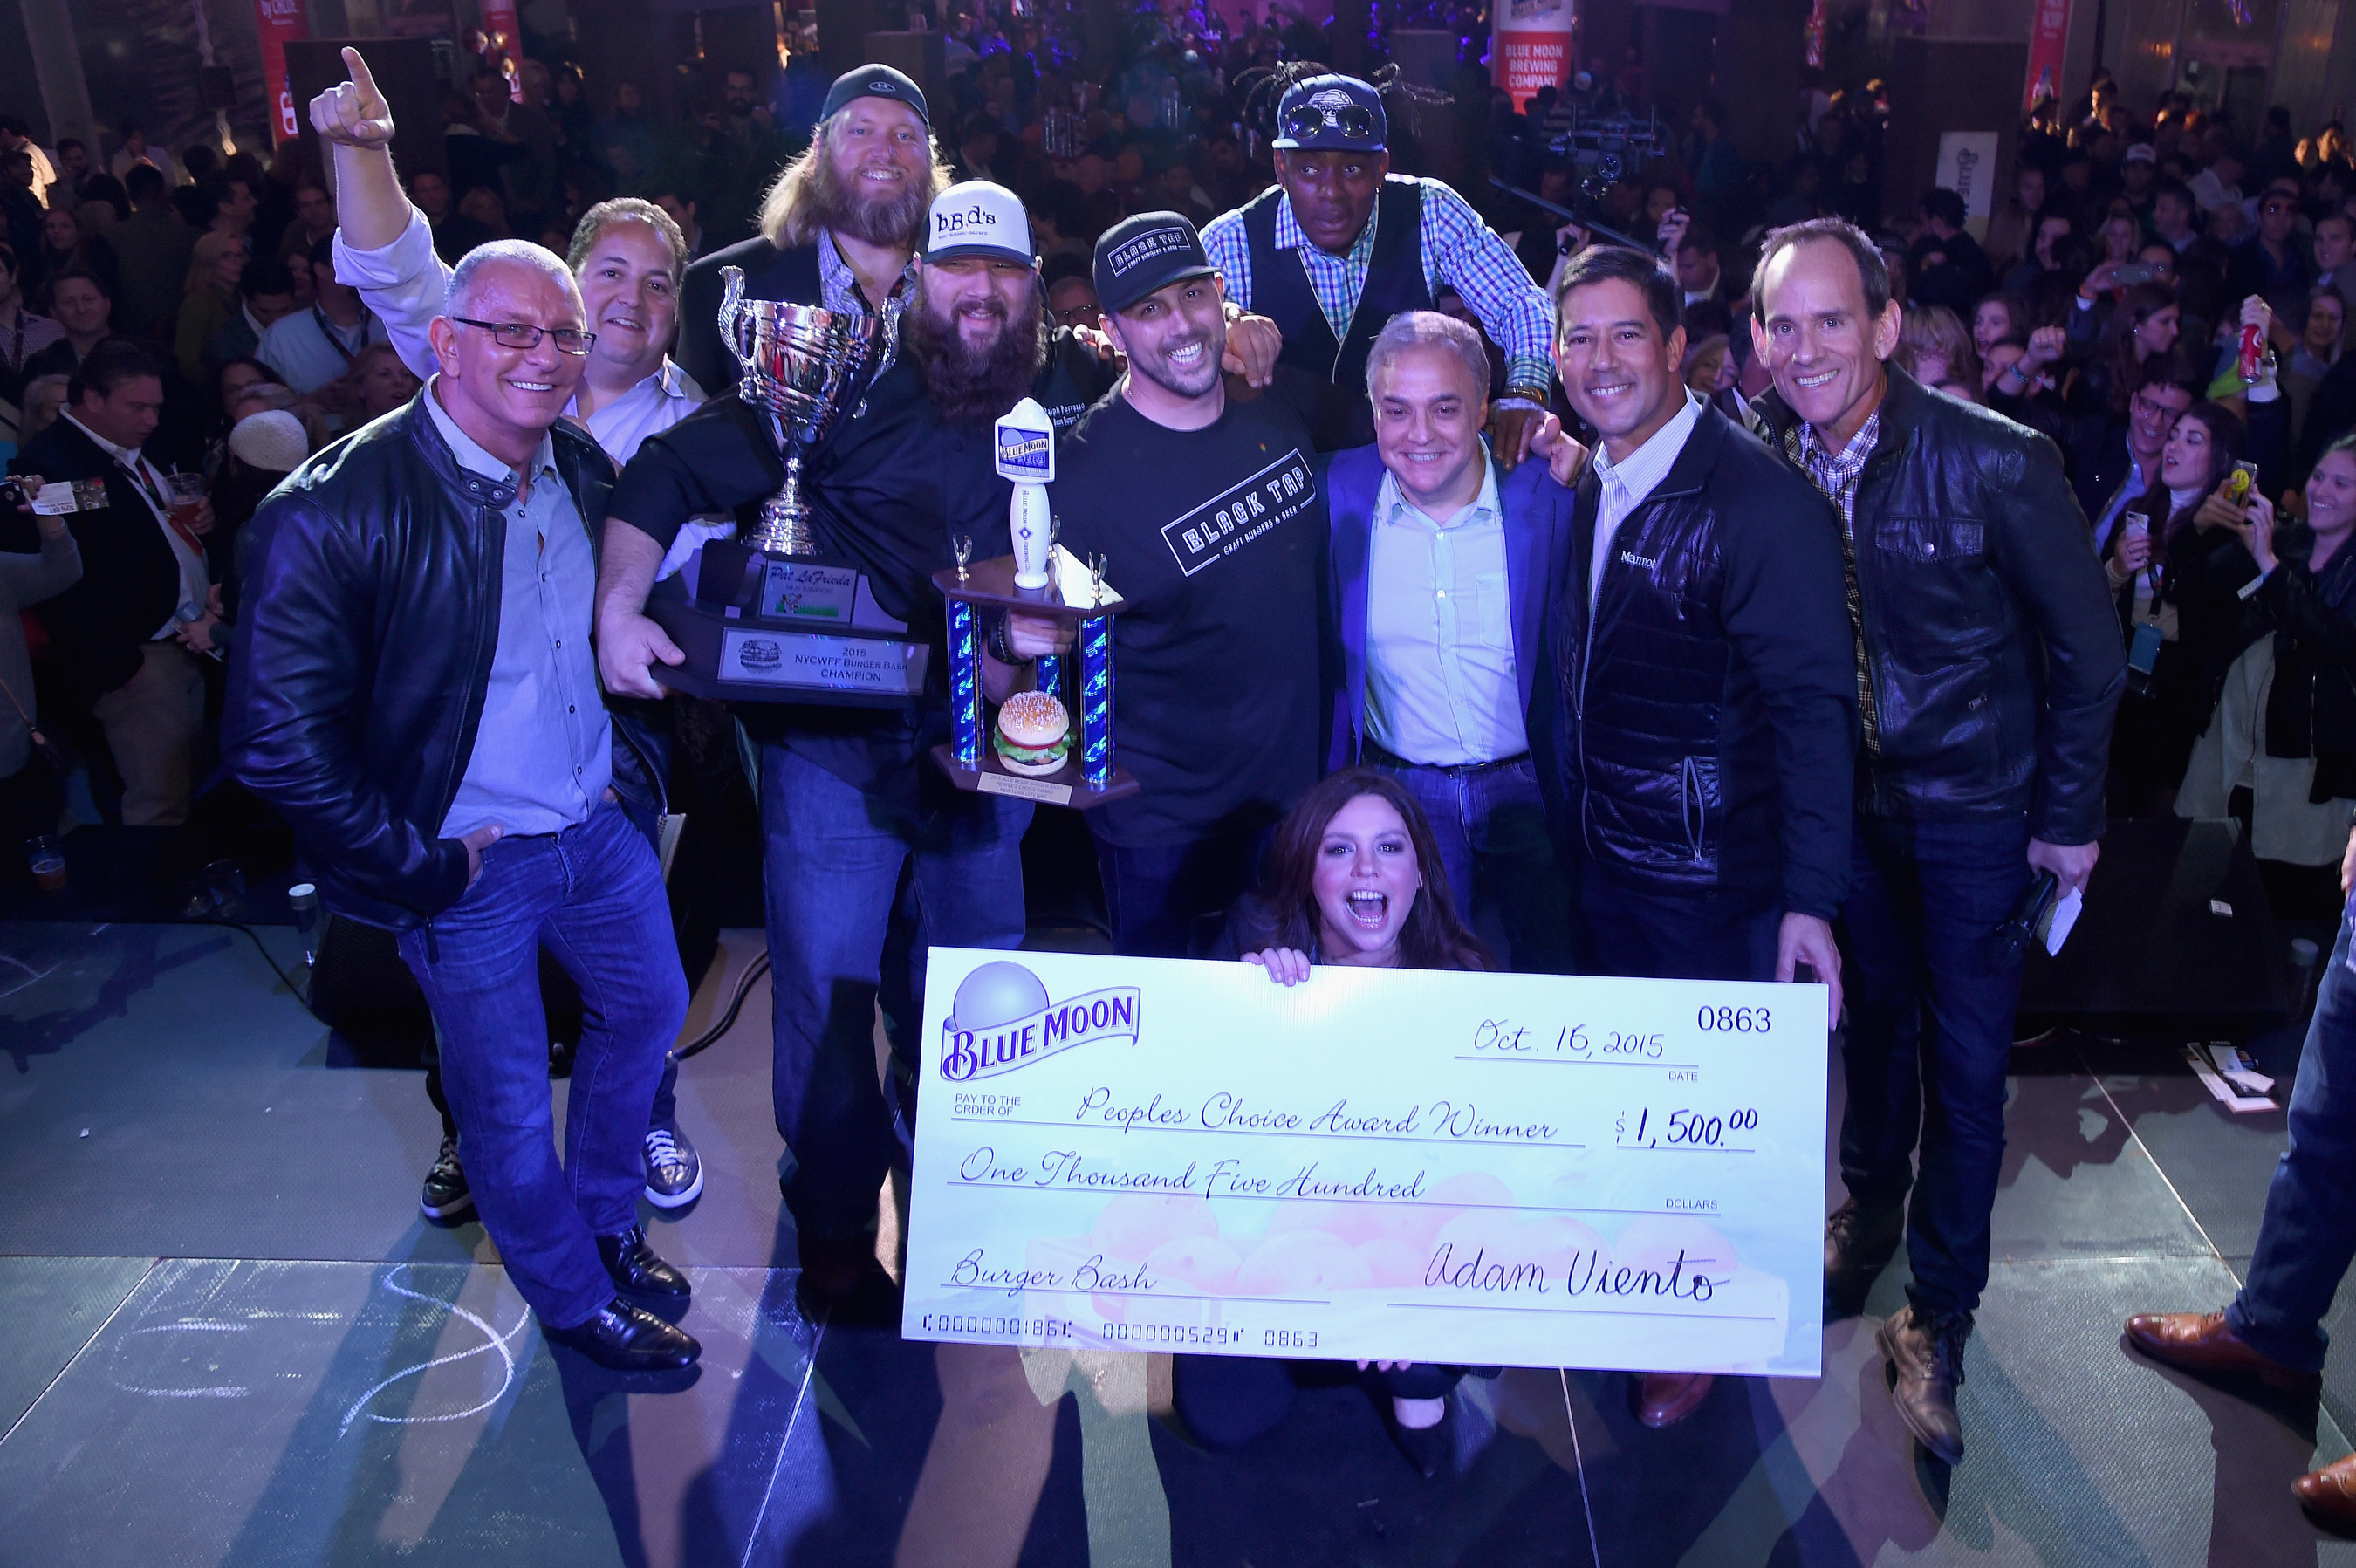 Celebrity chef Robert Irvine, New York Jets' Nick Mangold, Ralph Perrazzo of BBD's Beers Burgers Desserts as Pat LaFrieda's 2015 NYCWFF Burger Bash(R) Champion, Blue Moon People's Choice Award winner Chef Joe Isidori of Black Tap, musician Coolio, Rachael Ray, and NYCWFF Founder & Director Lee Brian Schrager celebrate onstage at the Blue Moon Burger Bash presented by Pat LaFrieda Meats hosted by Rachael Ray - Food Network & Cooking Channel New York City Wine & Food Festival presented by FOOD & WINE at Pier 92 on October 16, 2015. (Photo by Larry Busacca/Getty Images for NYCWFF)